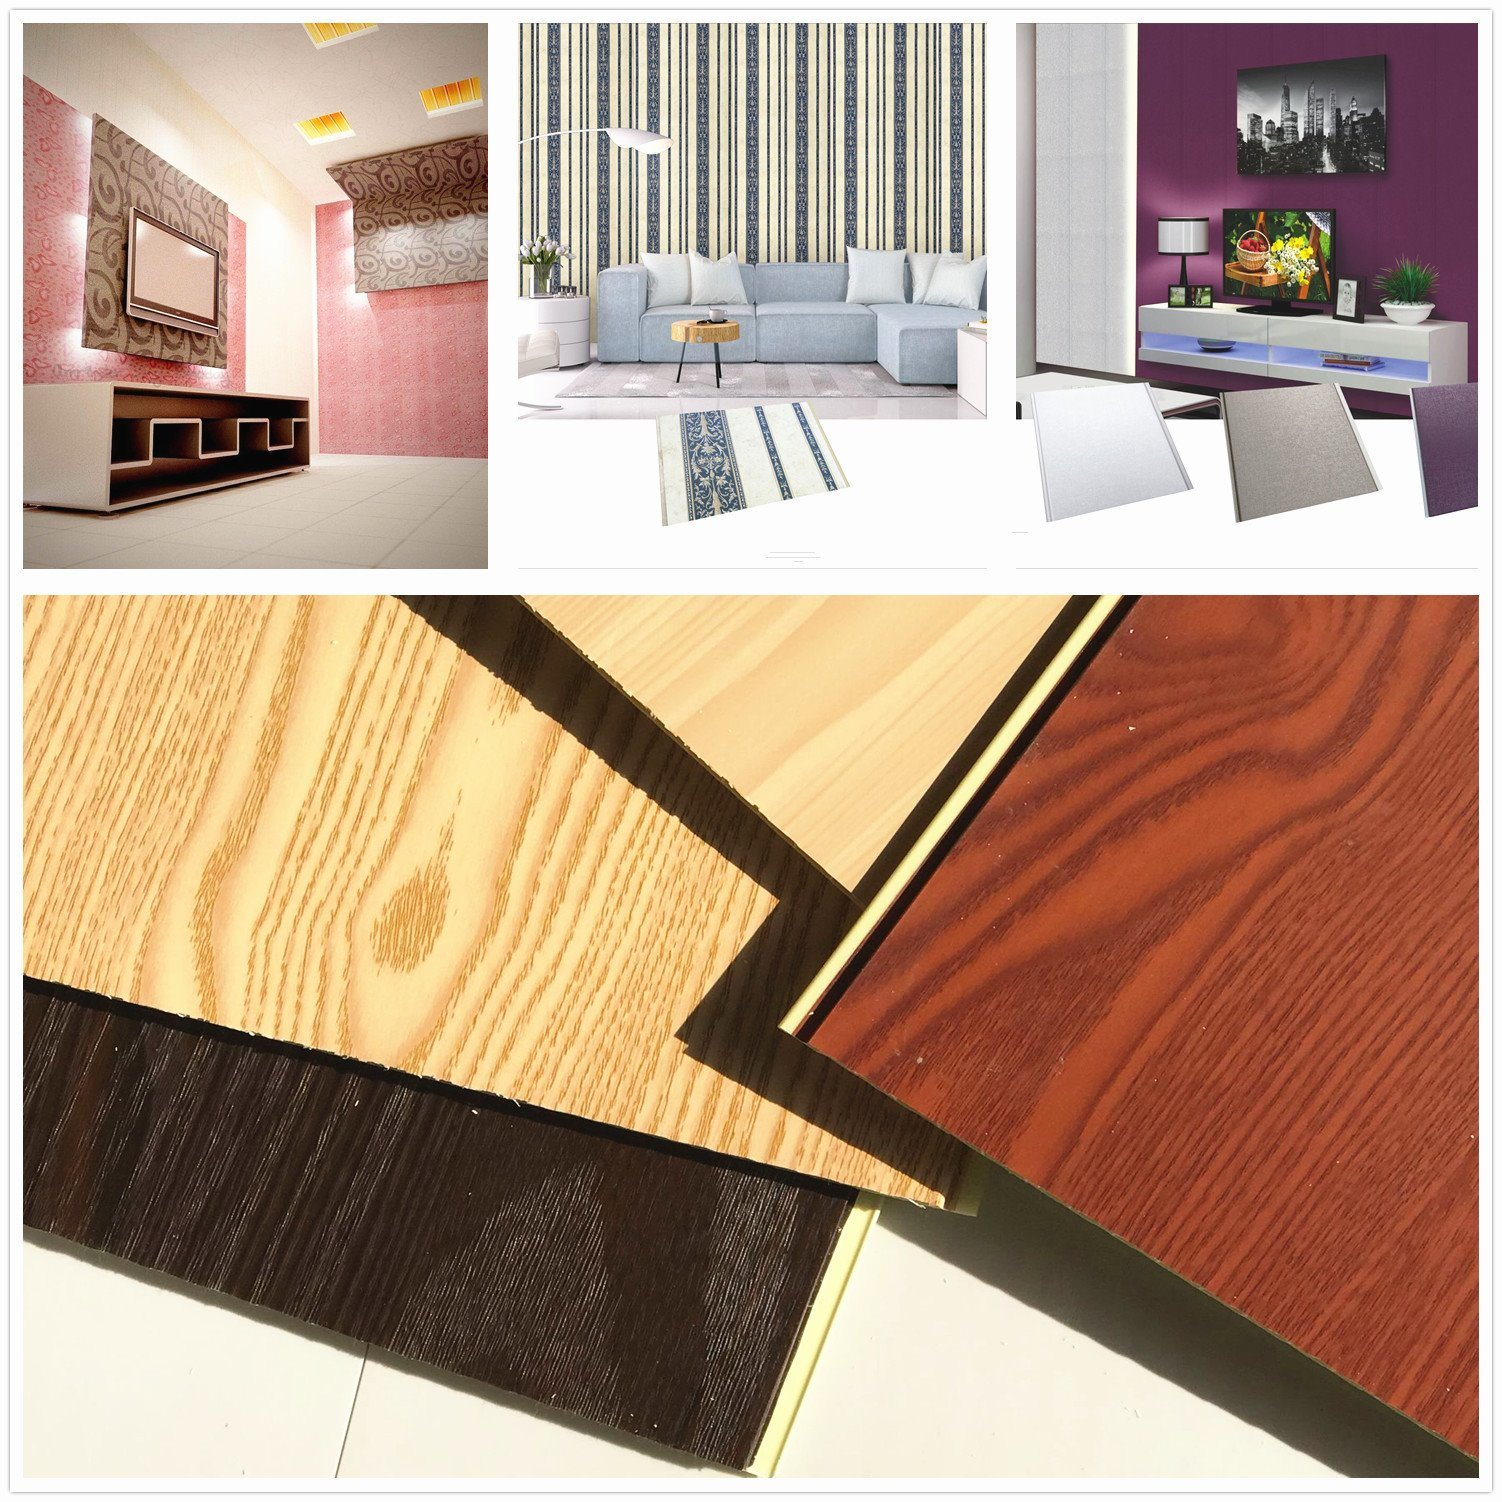 China 2018 New Style PVC Ceiling Tiles Wall Decoration Board DC-95 ...